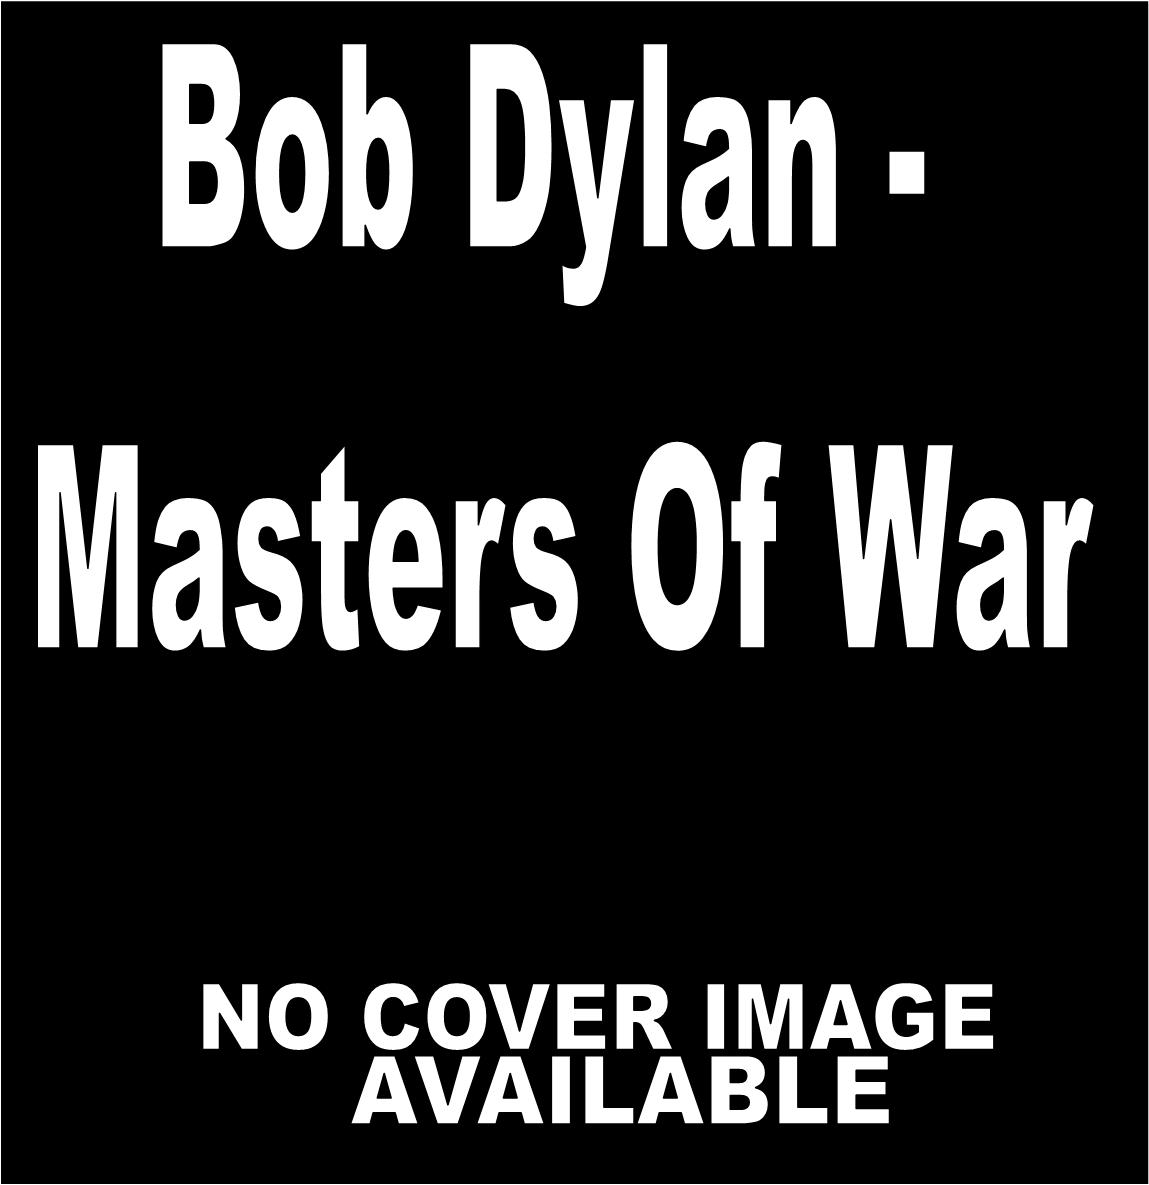 Bob Dylan - 'Masters Of War'